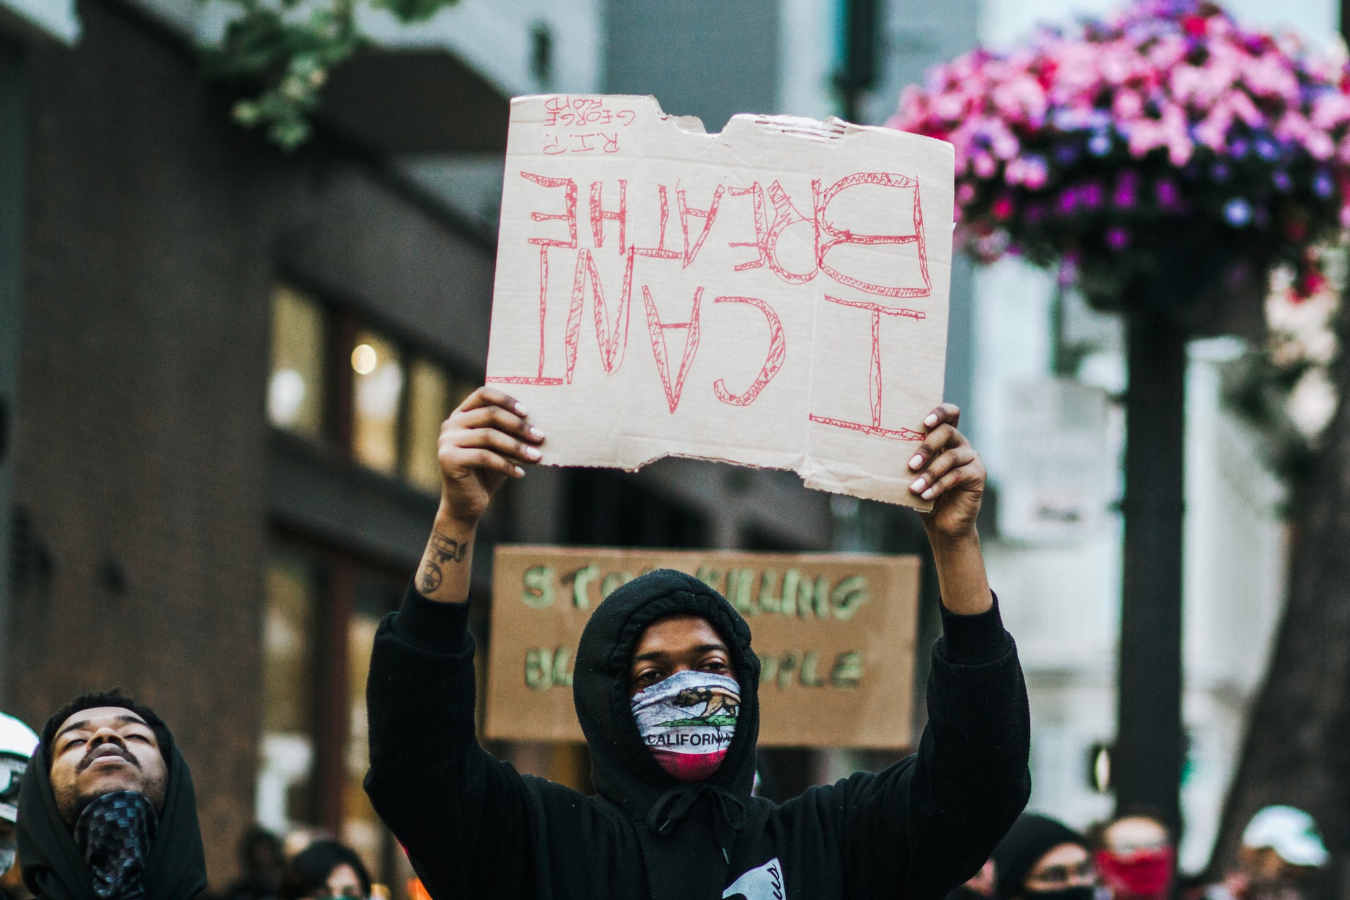 """Many protests took place before the Derek Chauvin trial. Picture here is a protestor holding an upside down sign that reads """"I can't breathe."""""""